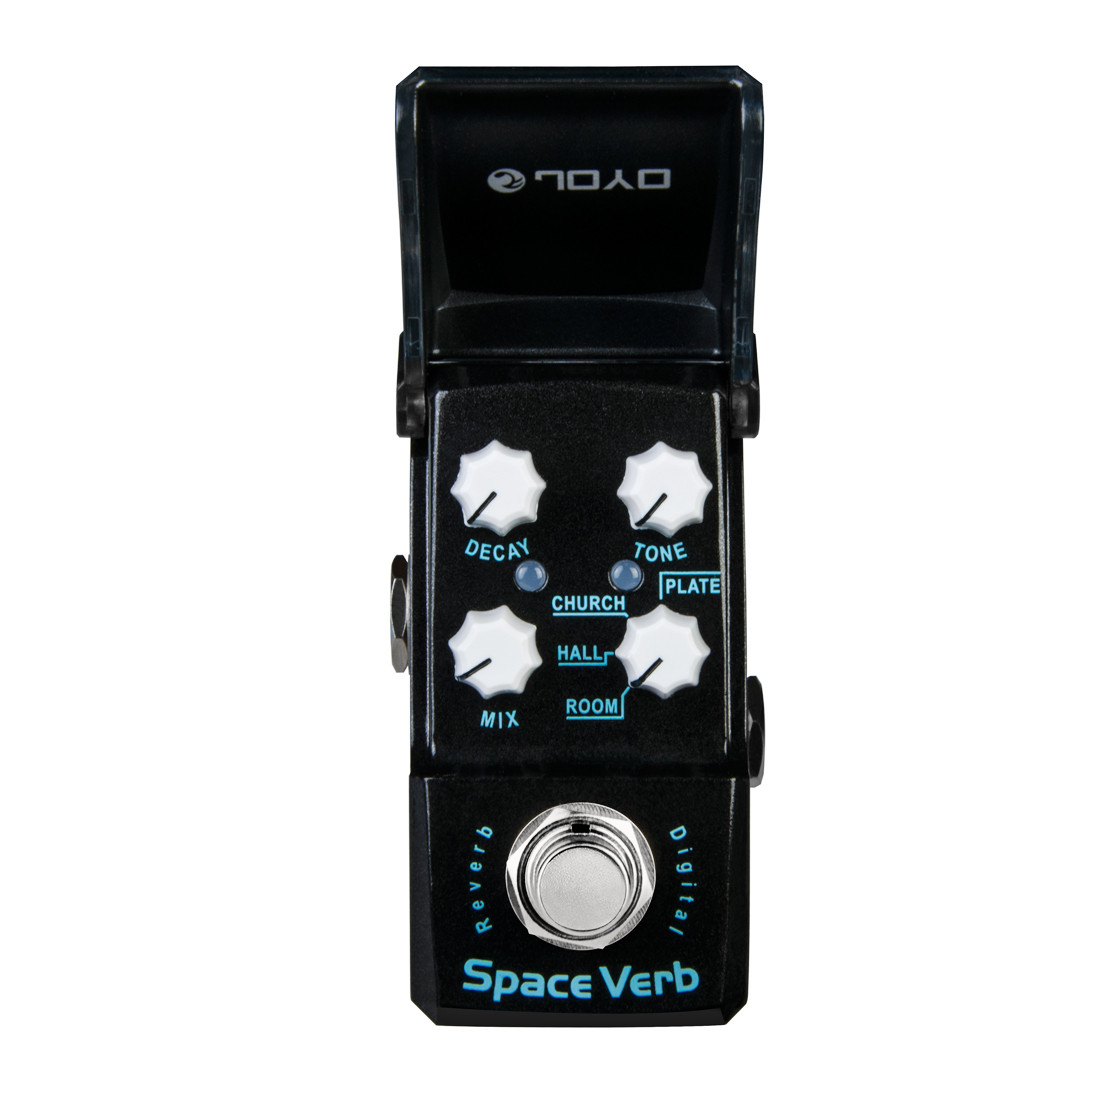 JOYO Space Verb Digital Guitar Effect Pedal True Bypass joyo jf 317 space verb digital reverb mini electric guitar effect pedal with knob guard true bypass